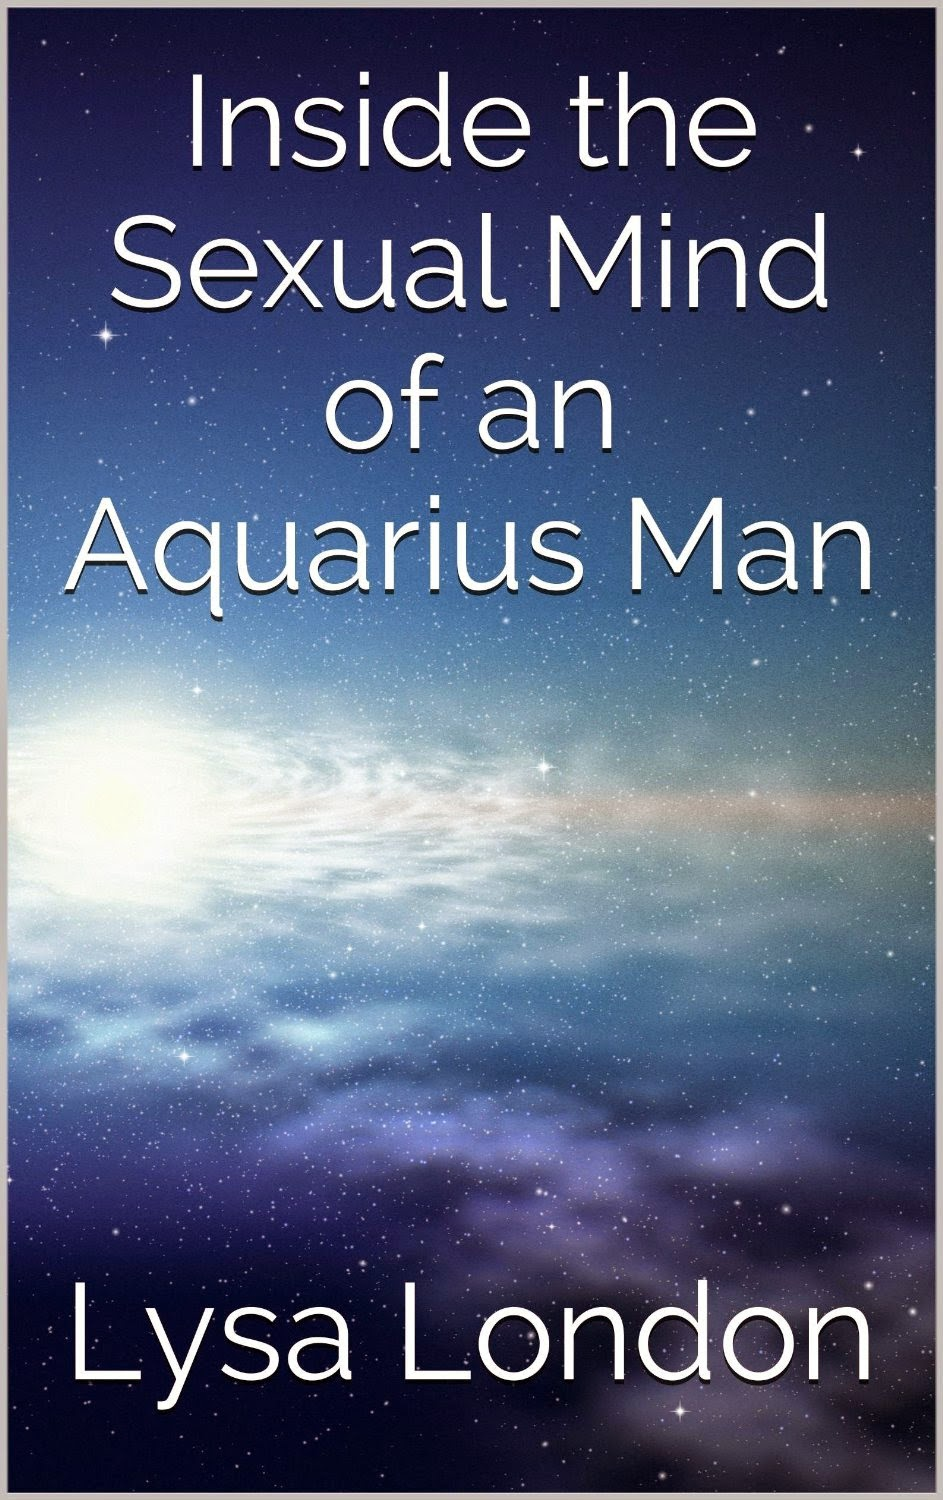 What does your Aquarius man want?